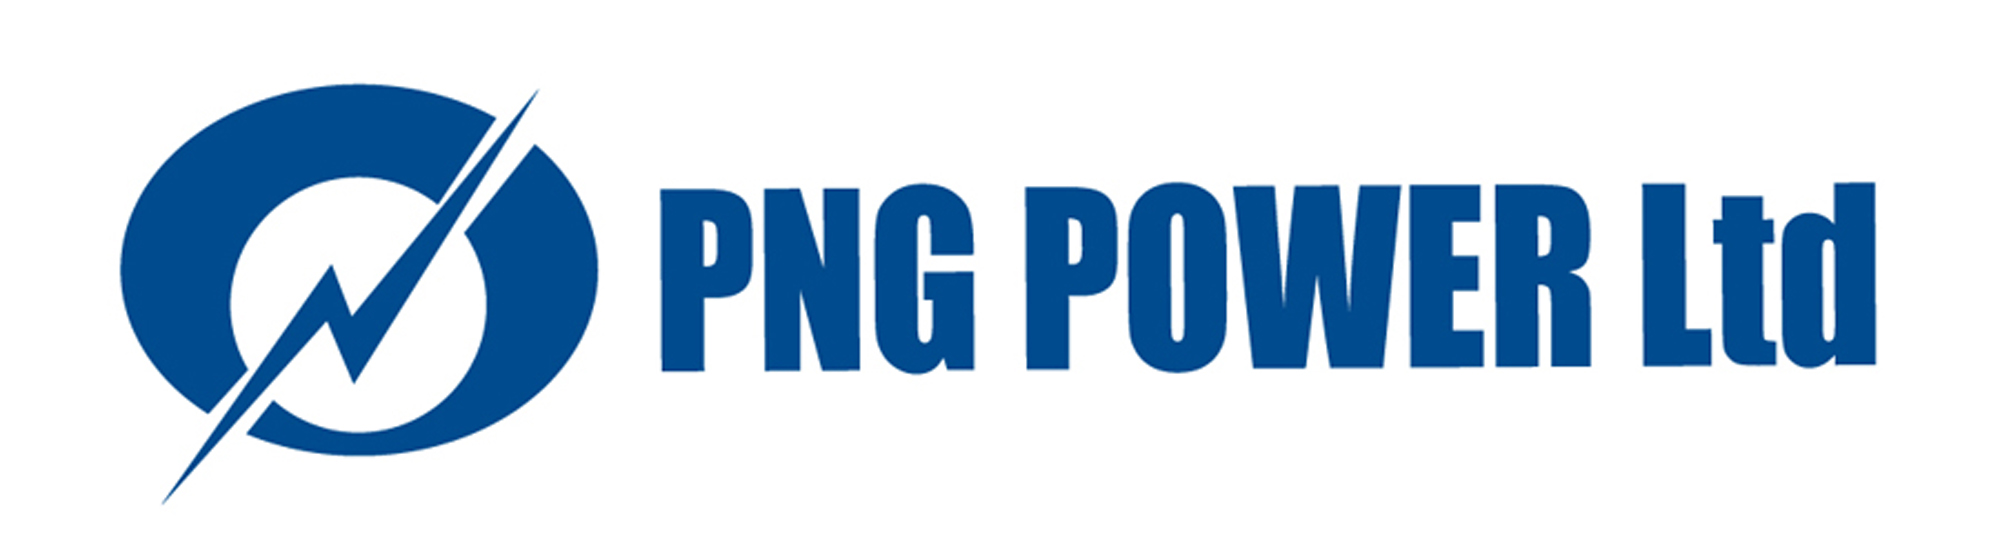 ExxonMobil PNG and PNG Power to conduct a study to provide Electricity in Hela Province